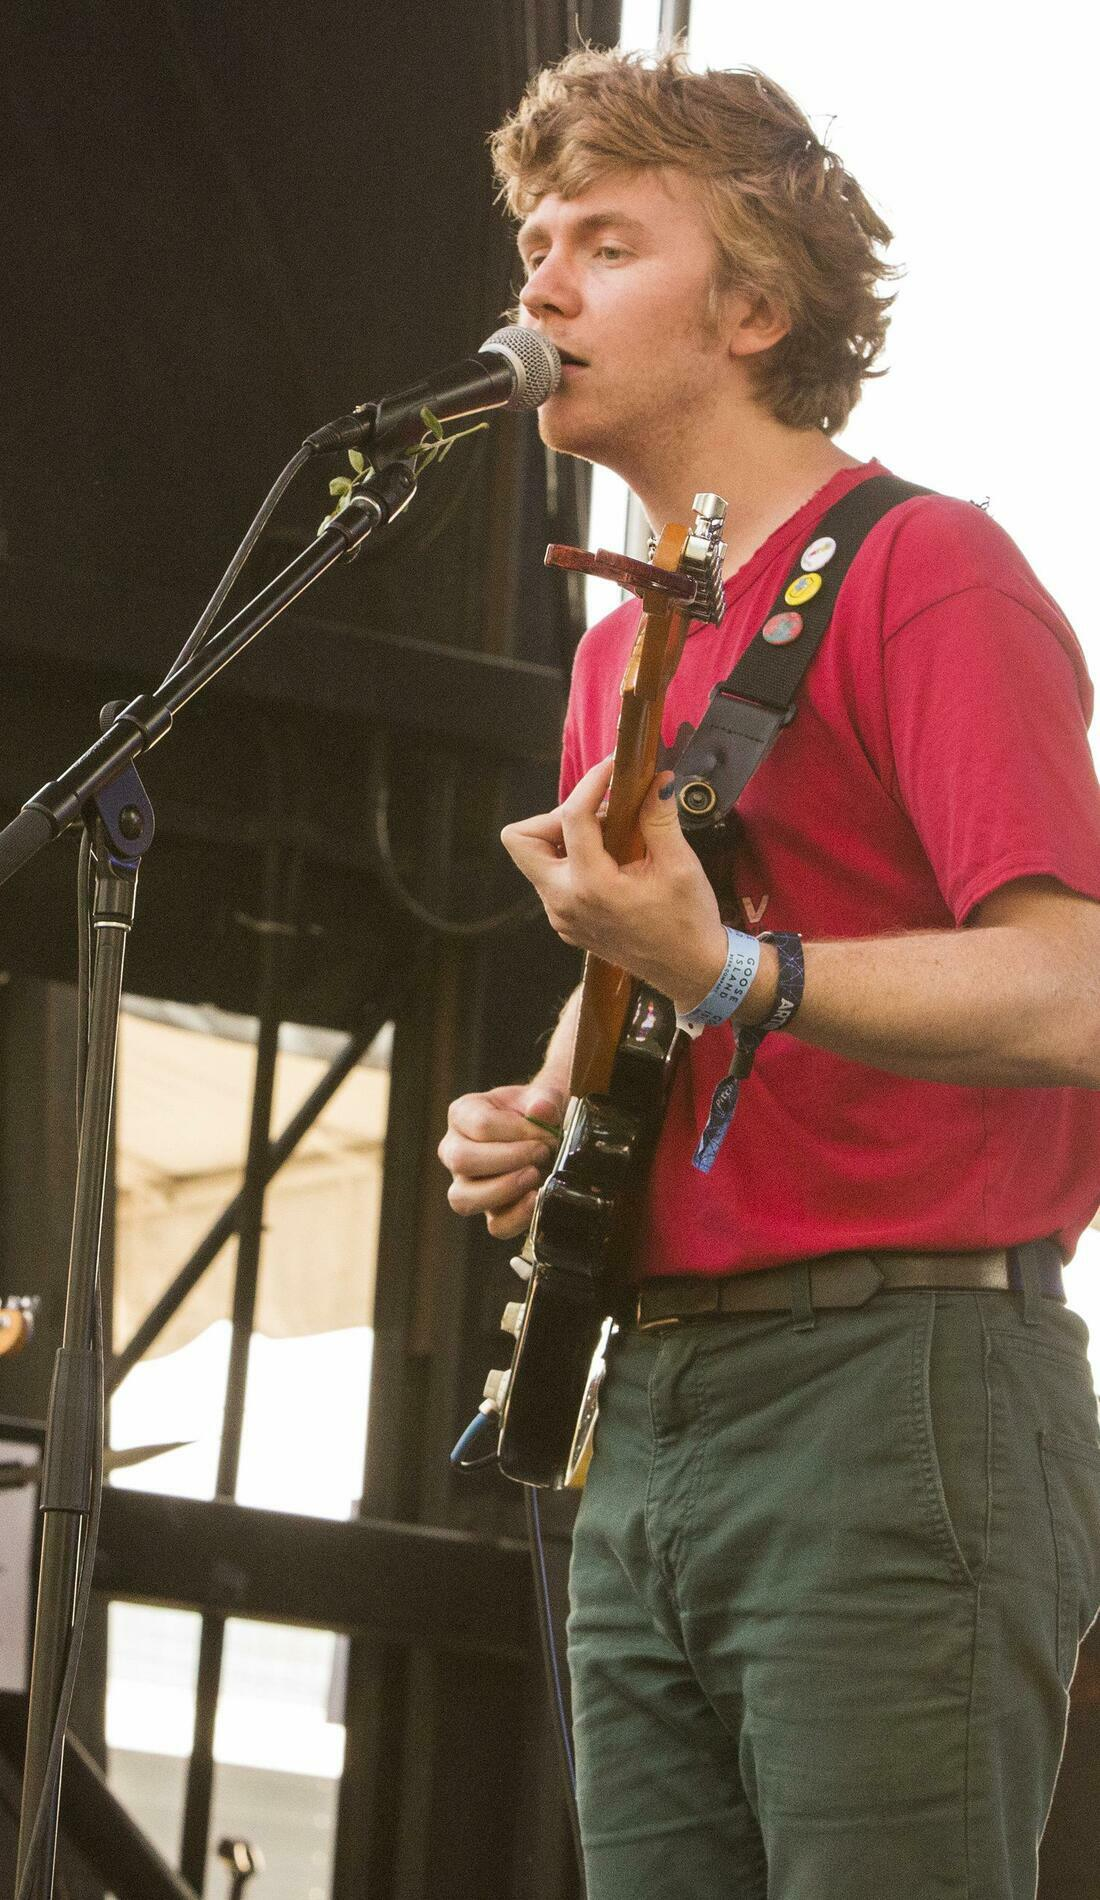 A Pinegrove live event